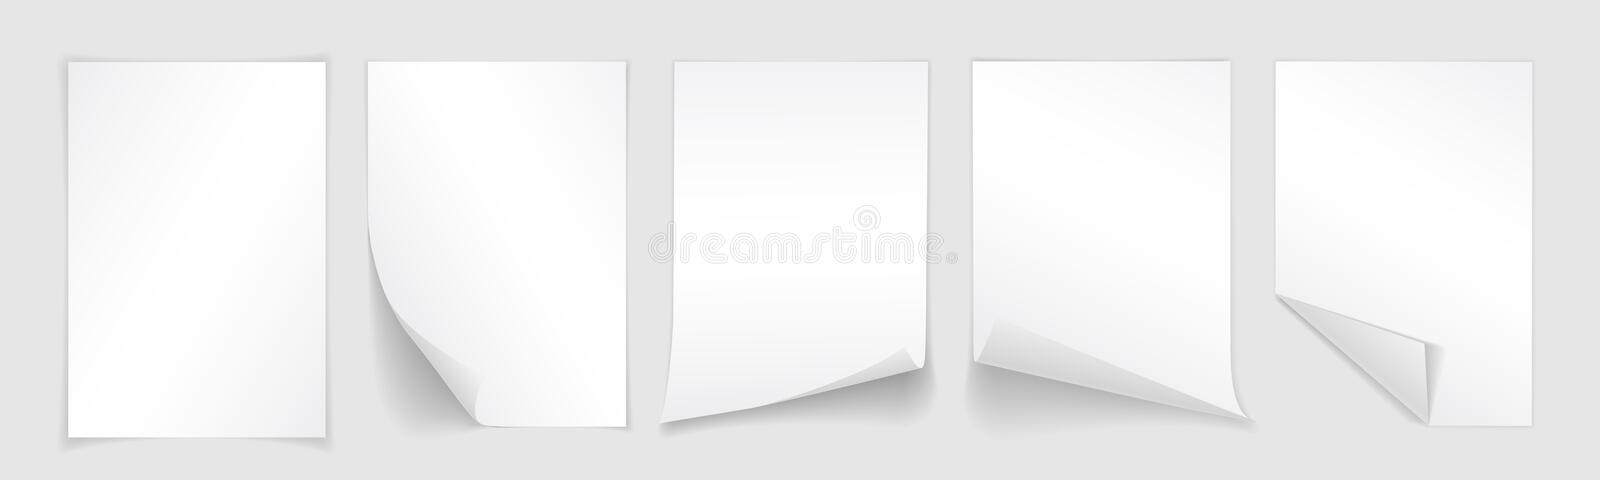 Blank A4 sheet of white paper with curled corner and shadow, template for your design. Set. Vector illustration.  vector illustration